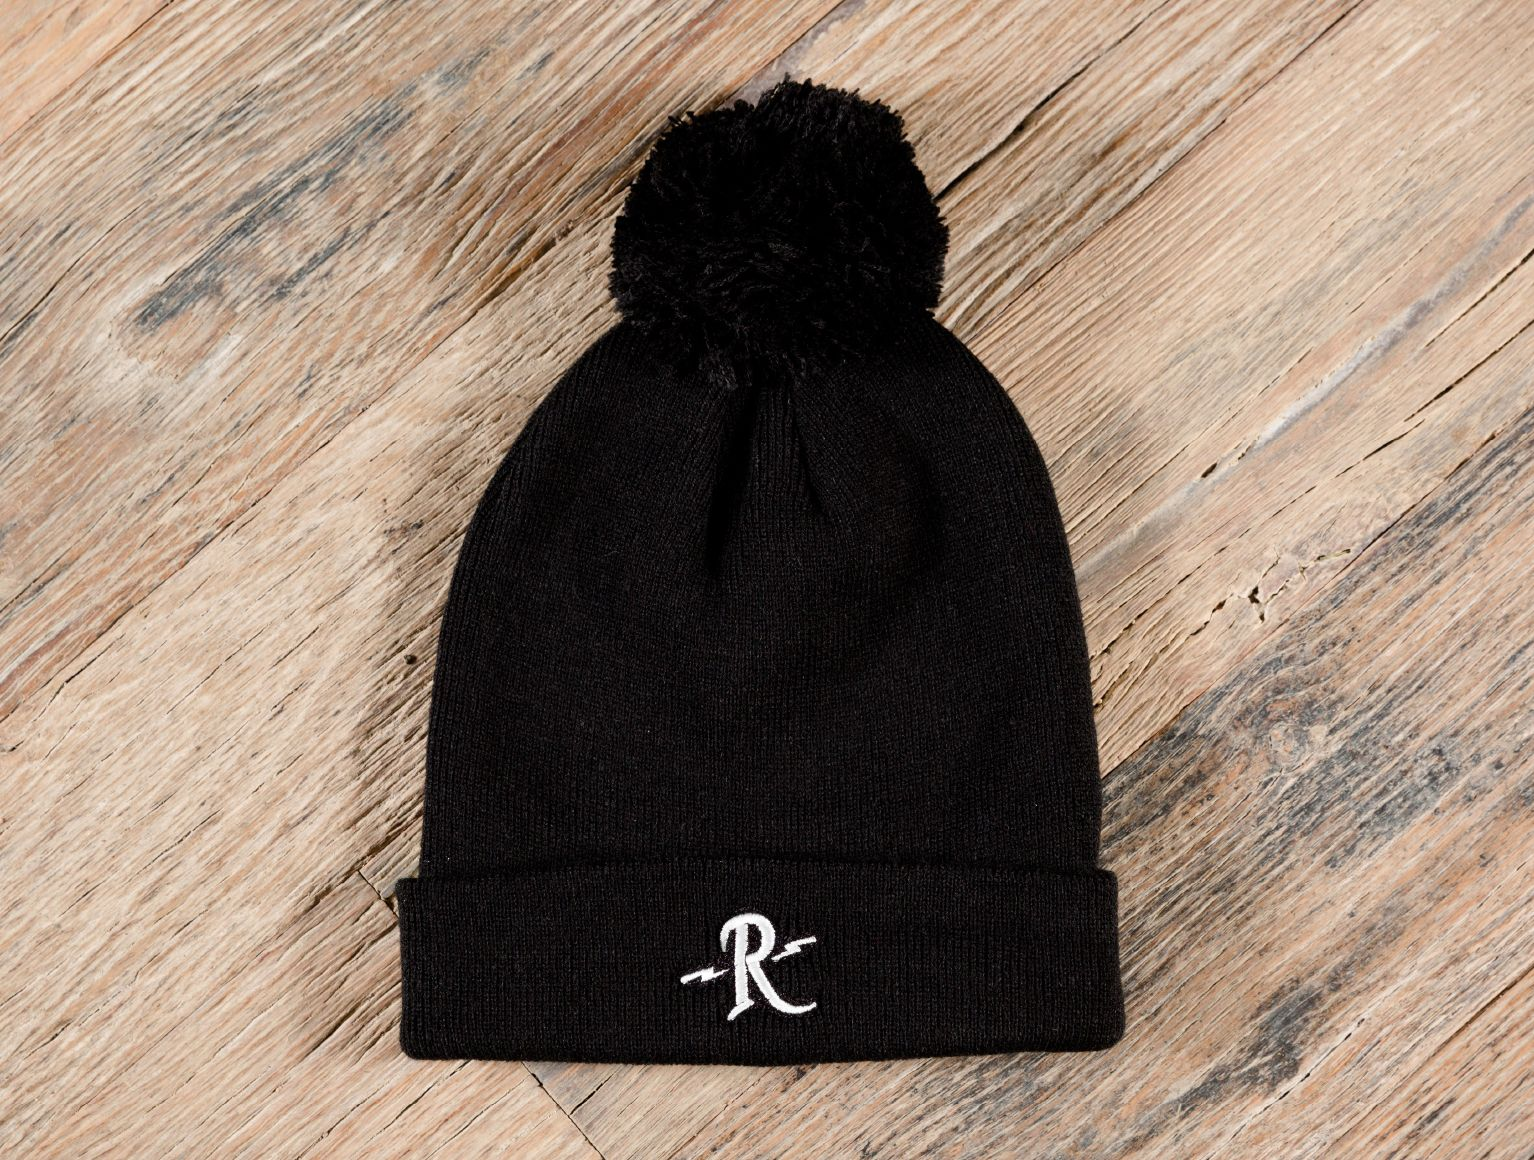 Renegade bobble hat